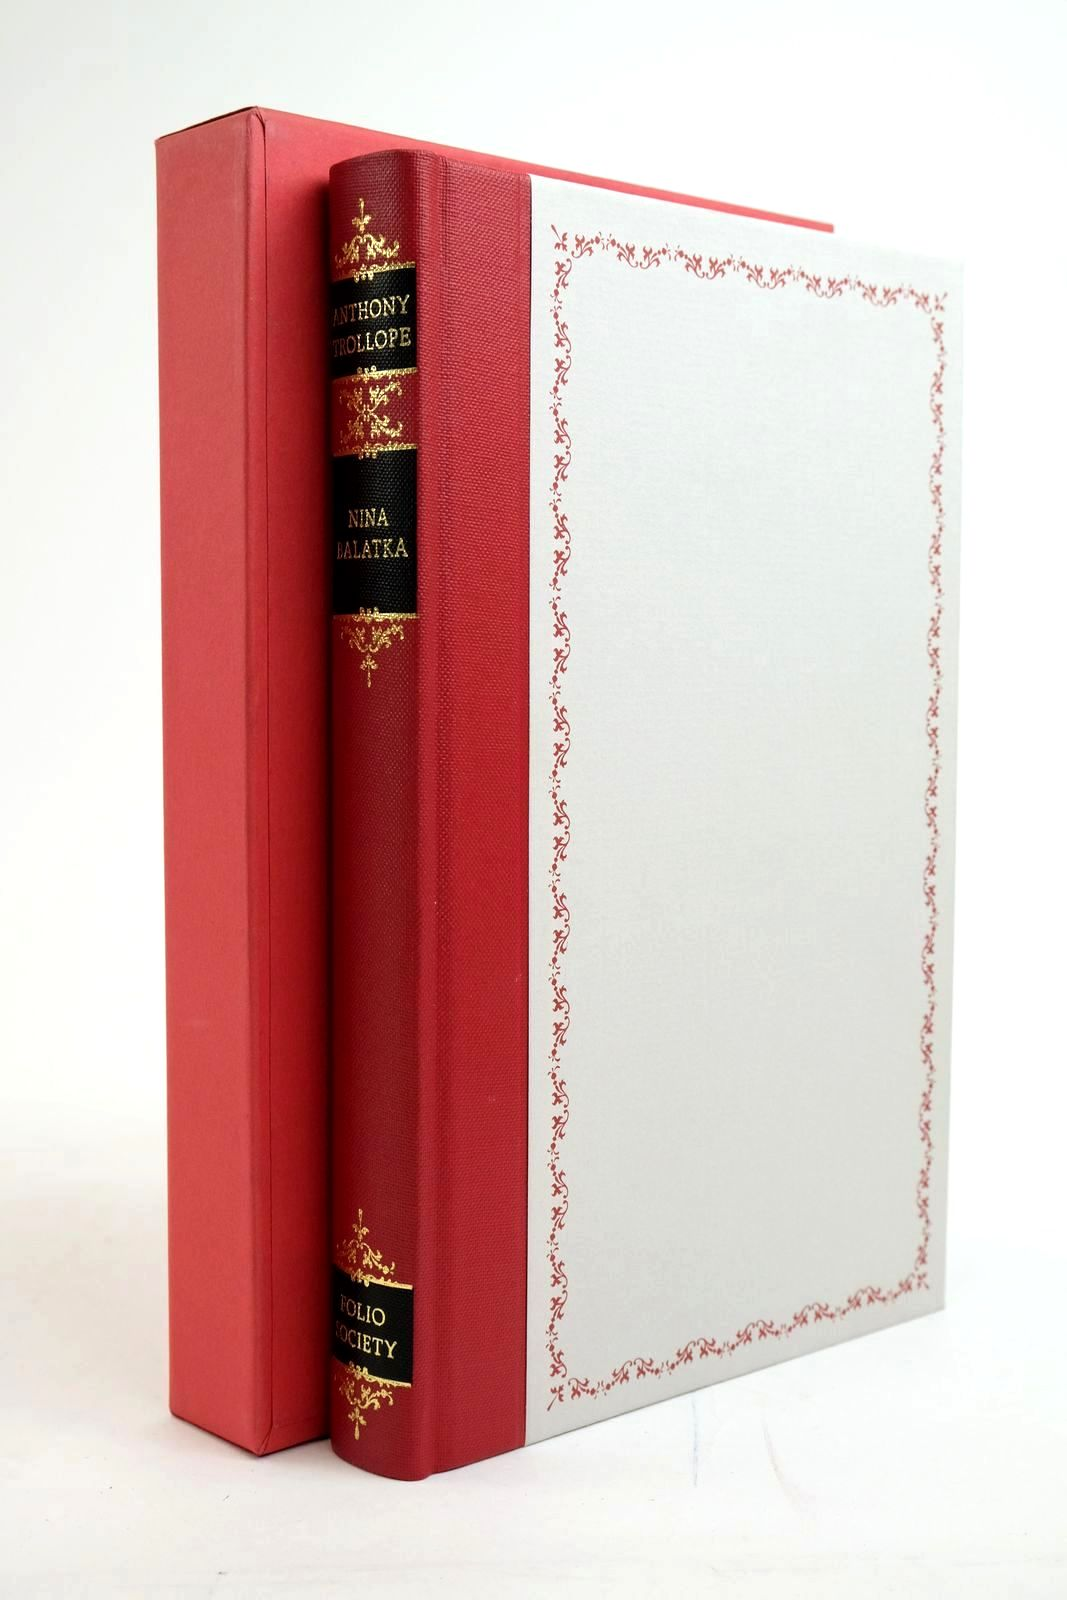 Photo of NINA BALATKA written by Trollope, Anthony Thirlwell, Angela illustrated by Waters, Rod published by Folio Society (STOCK CODE: 1321406)  for sale by Stella & Rose's Books